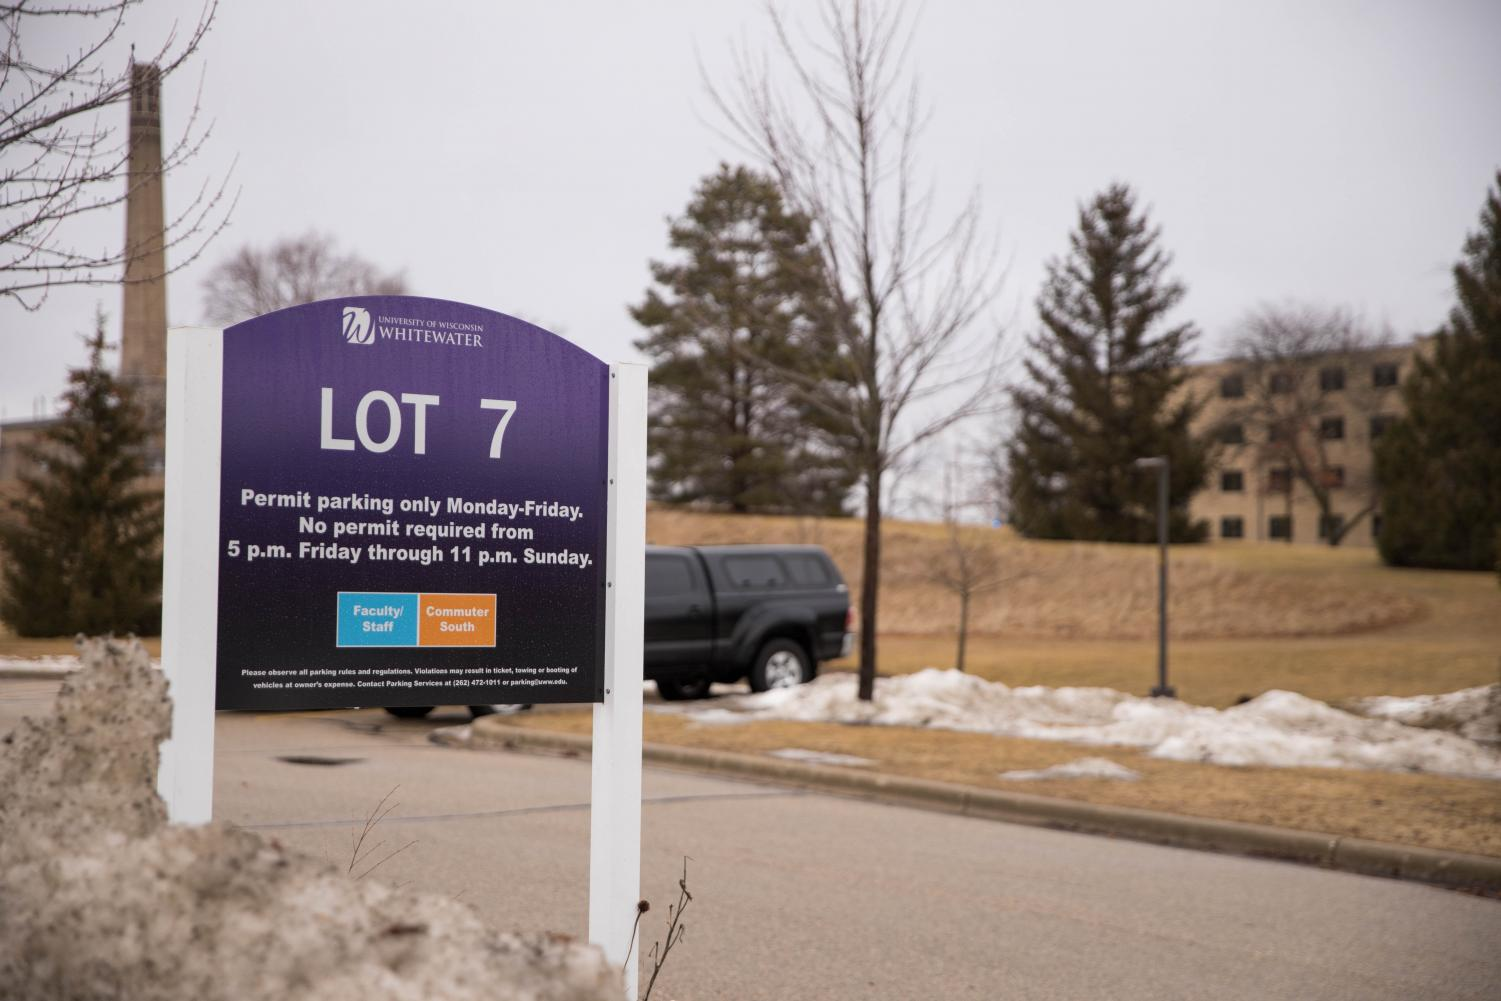 Portions of Lot 7 will be sacrificed to the construction of a new residence hall building on campus as the project progresses. The parking system will be temporarily re-structured.